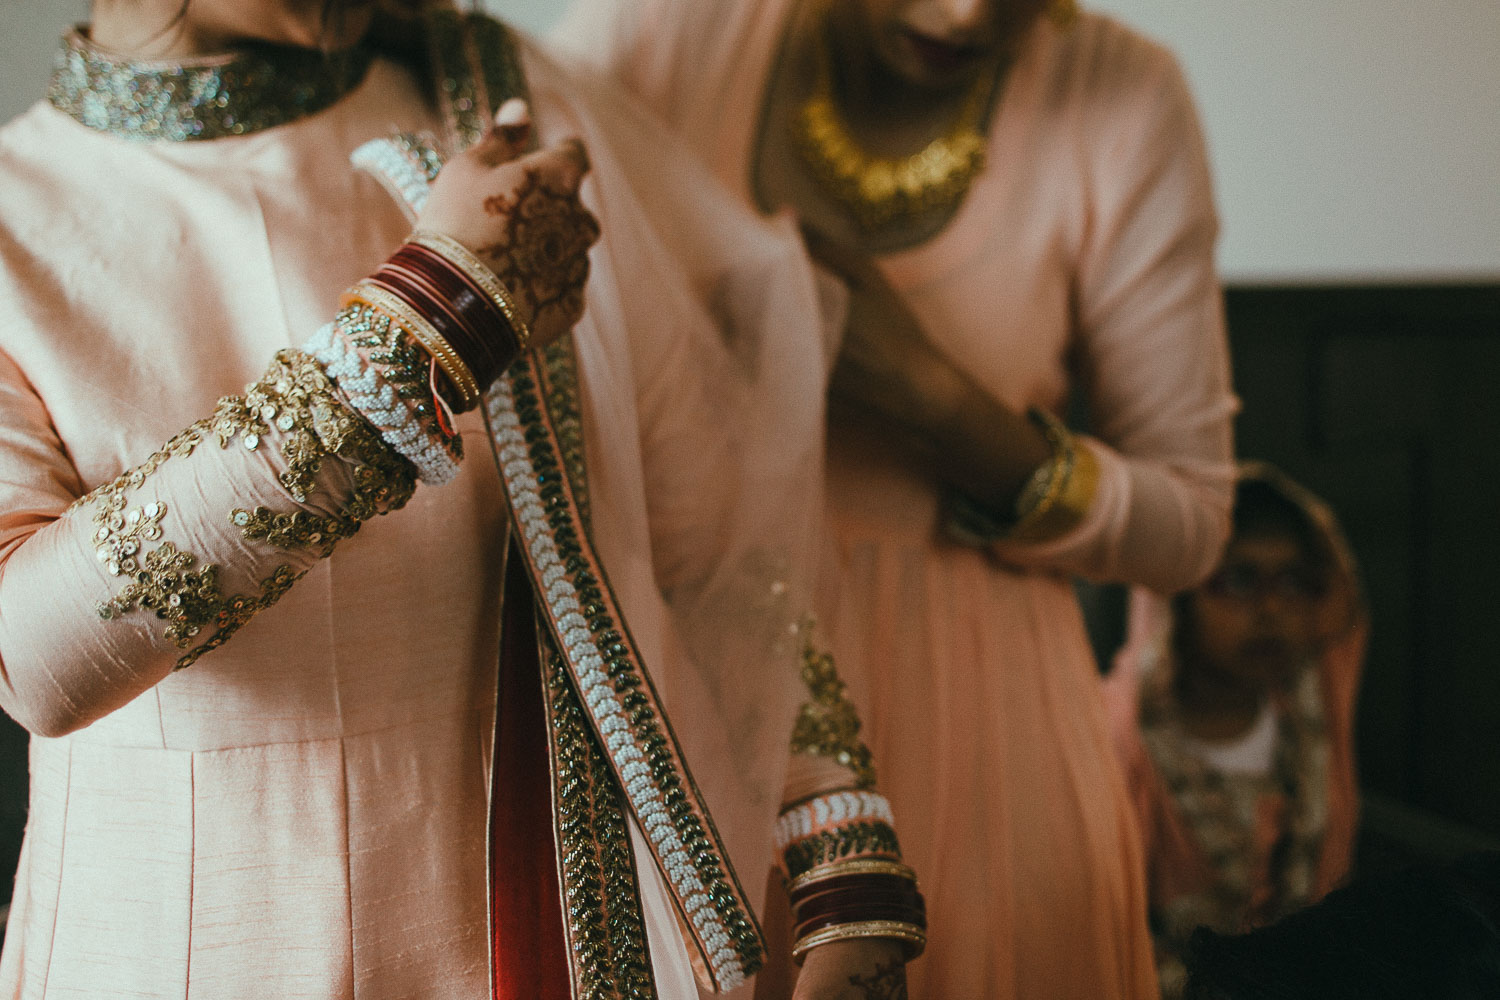 indian-bride-getting-ready (10).jpg